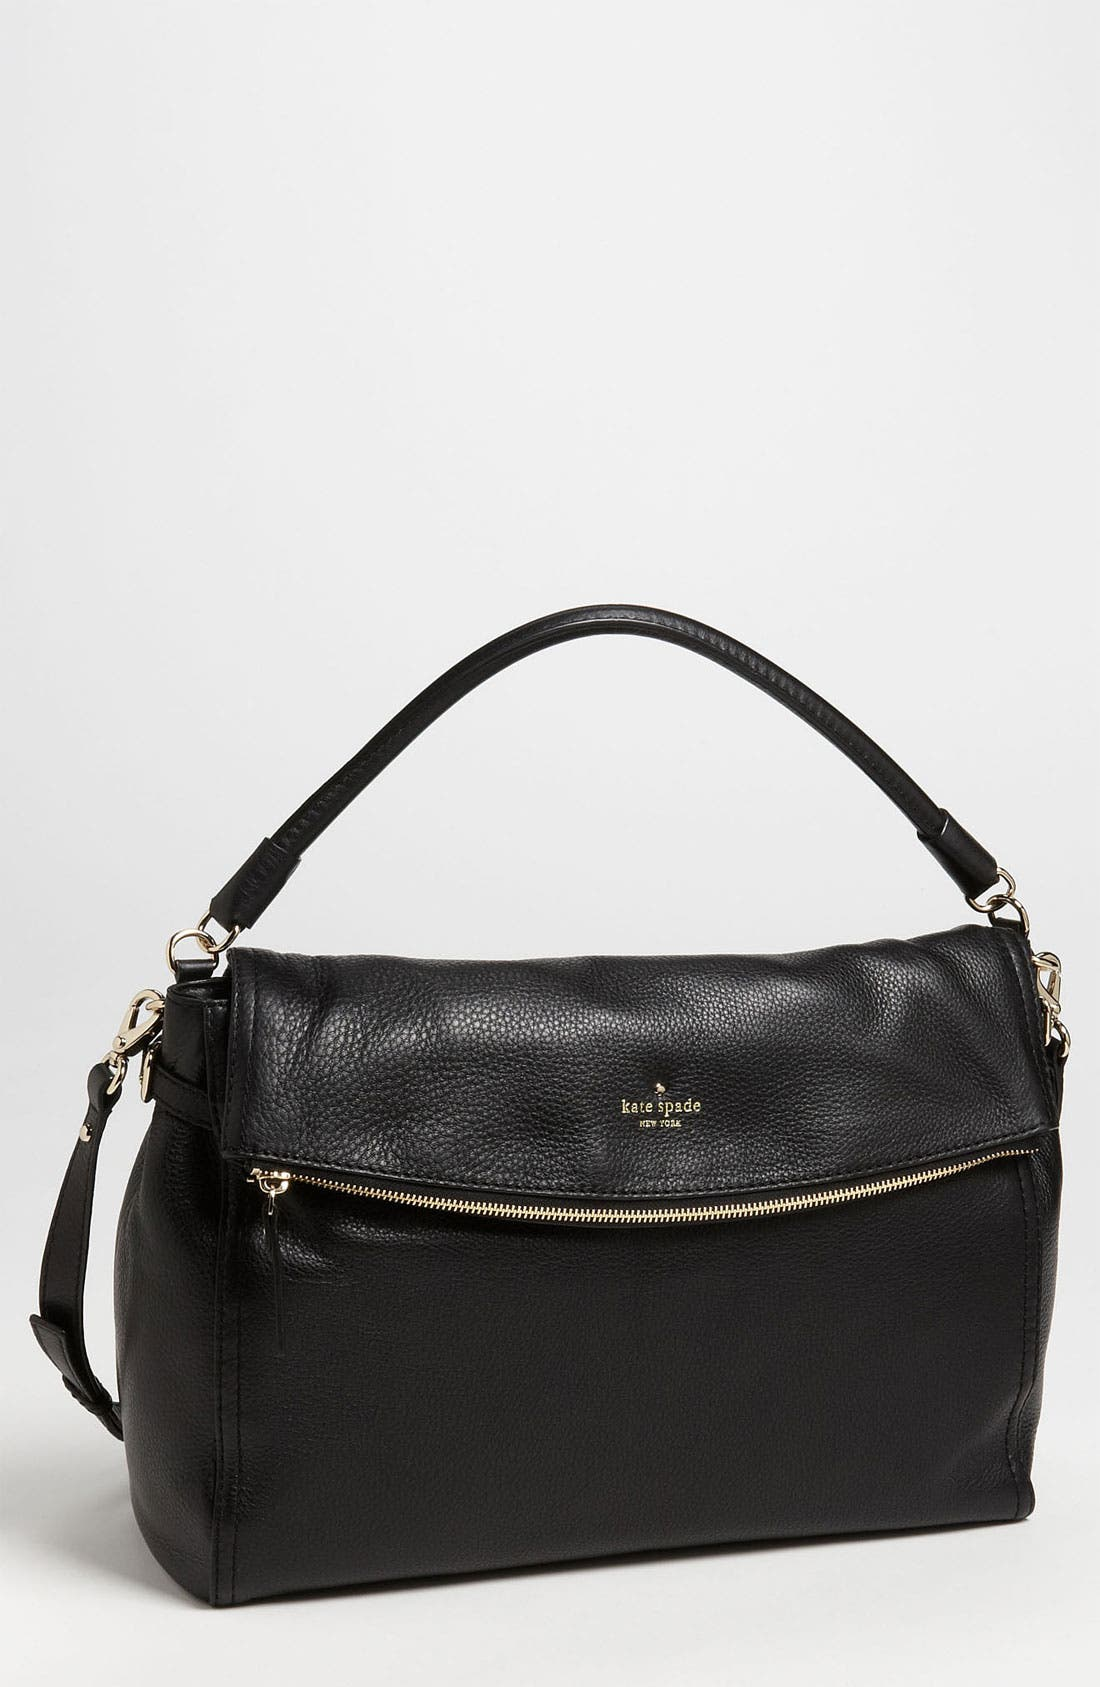 Main Image - kate spade new york 'cobble hill - minka' shoulder bag